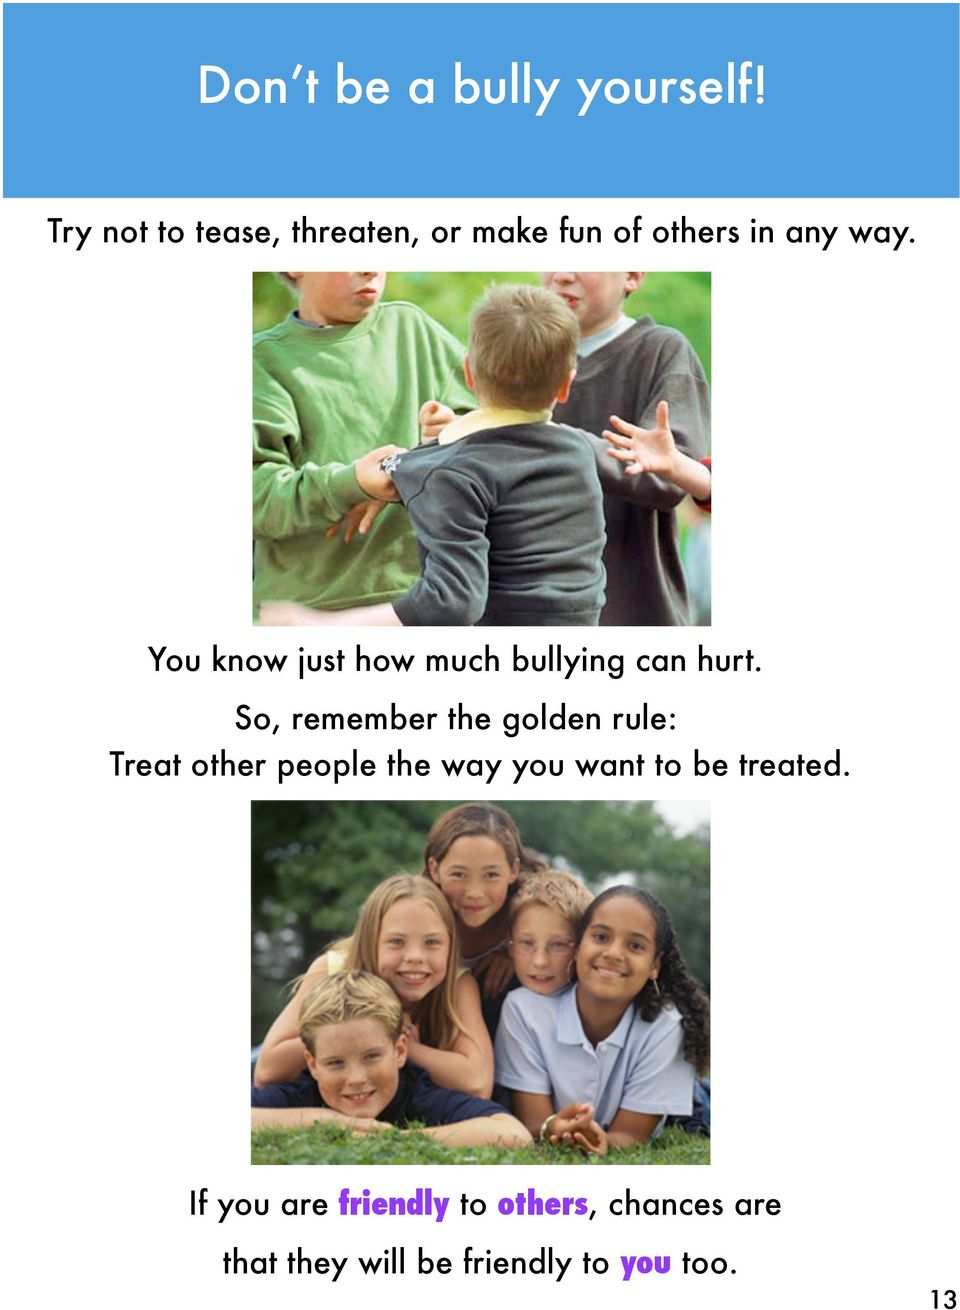 You know just how much bullying can hurt.